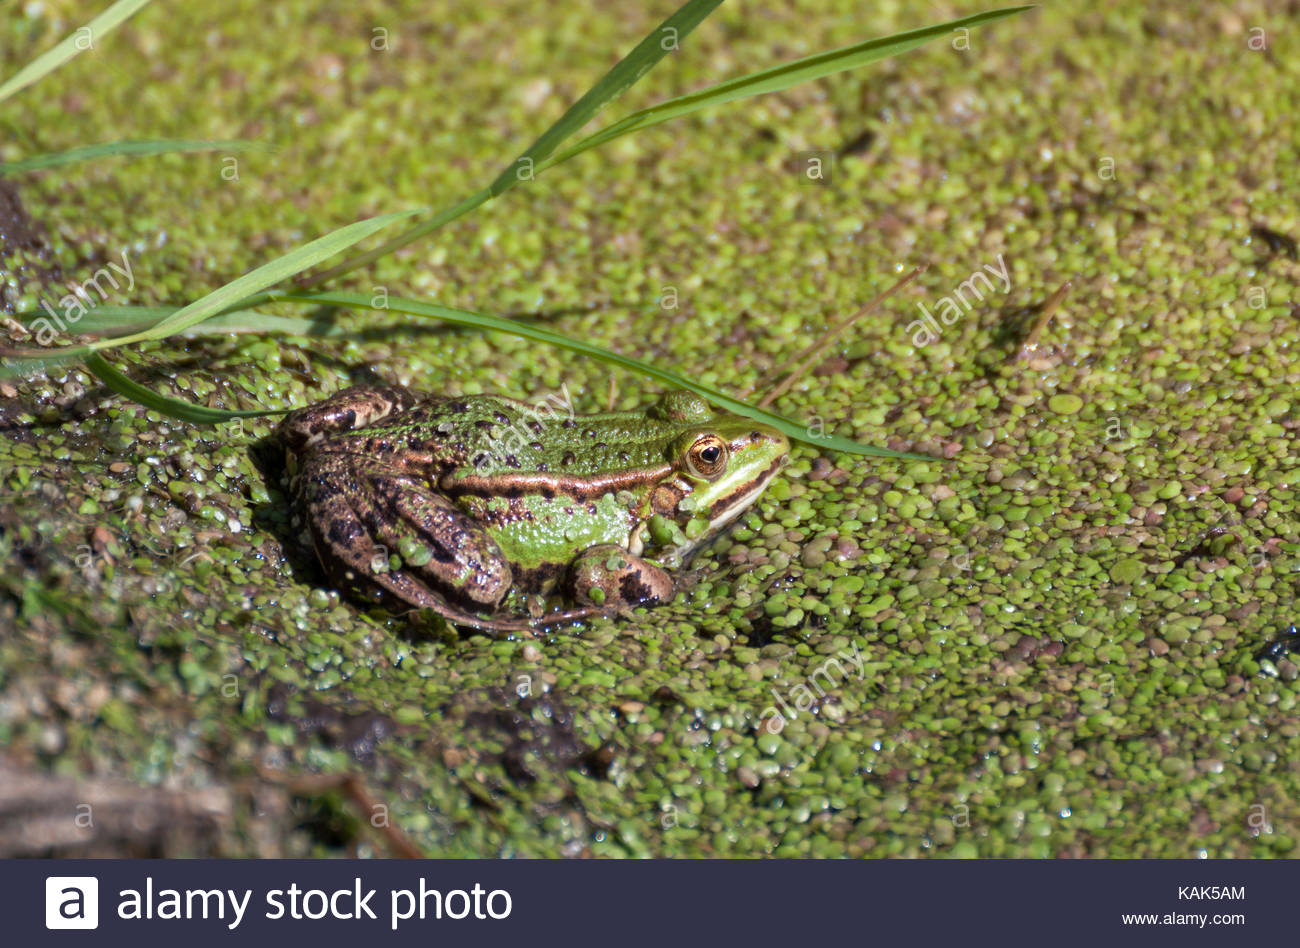 Green water frog sits camouflaged in duckweed. Nature reserve Brenner Moor. - Stock Image